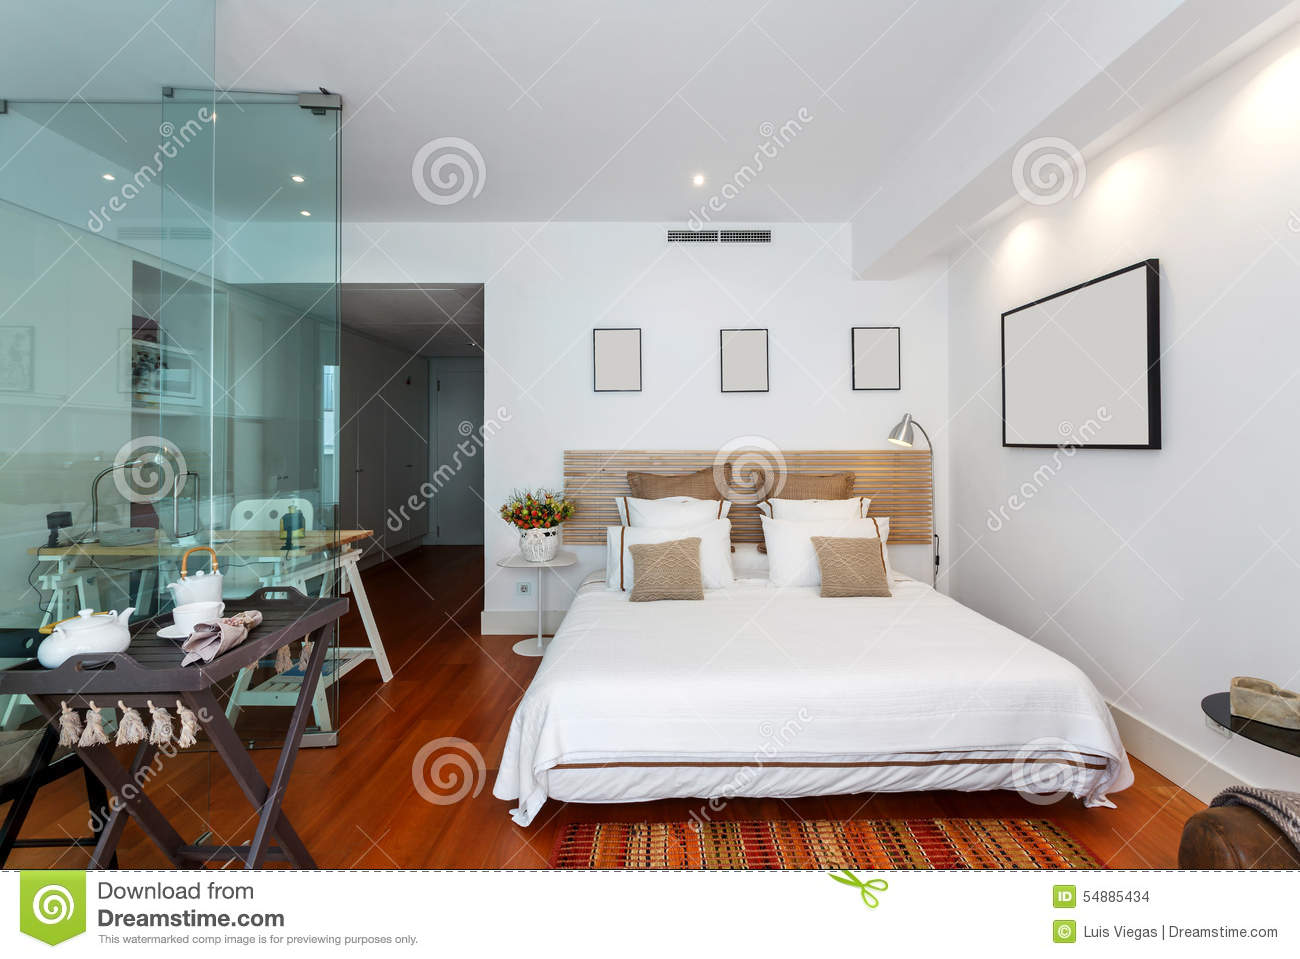 Maison Simple Moderne De Chambre à Coucher Photo stock - Image ...